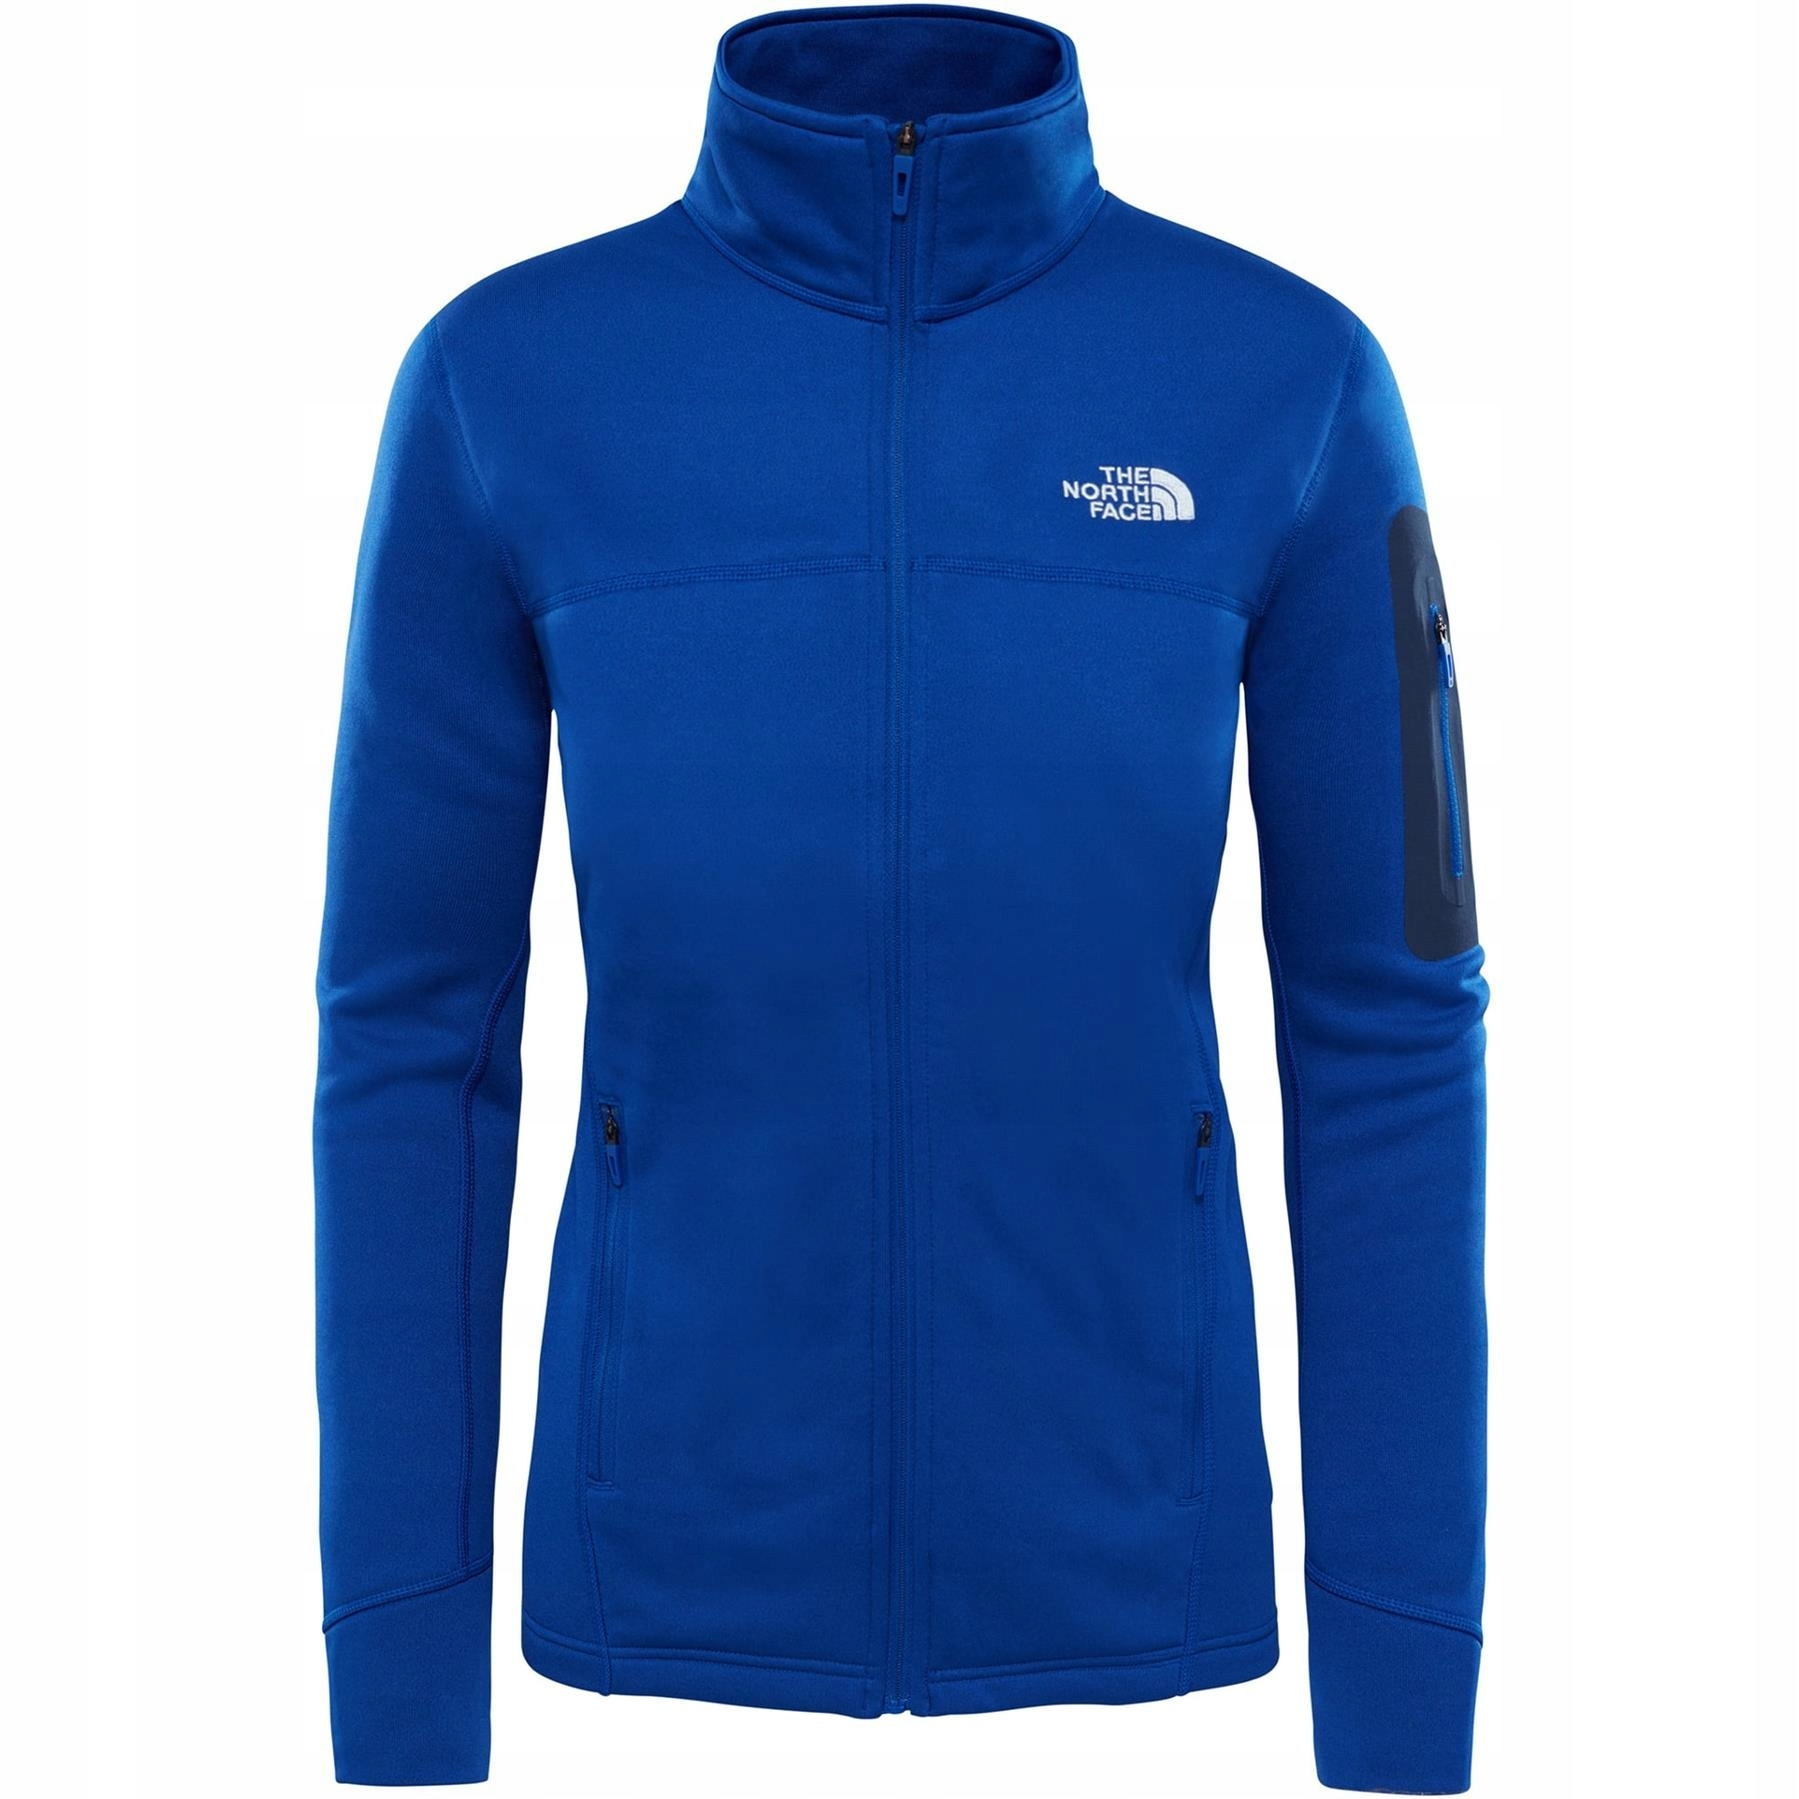 BLUZA THE NORTH FACE KYOSHI FZ T93JYS1MJ r M 7384037497